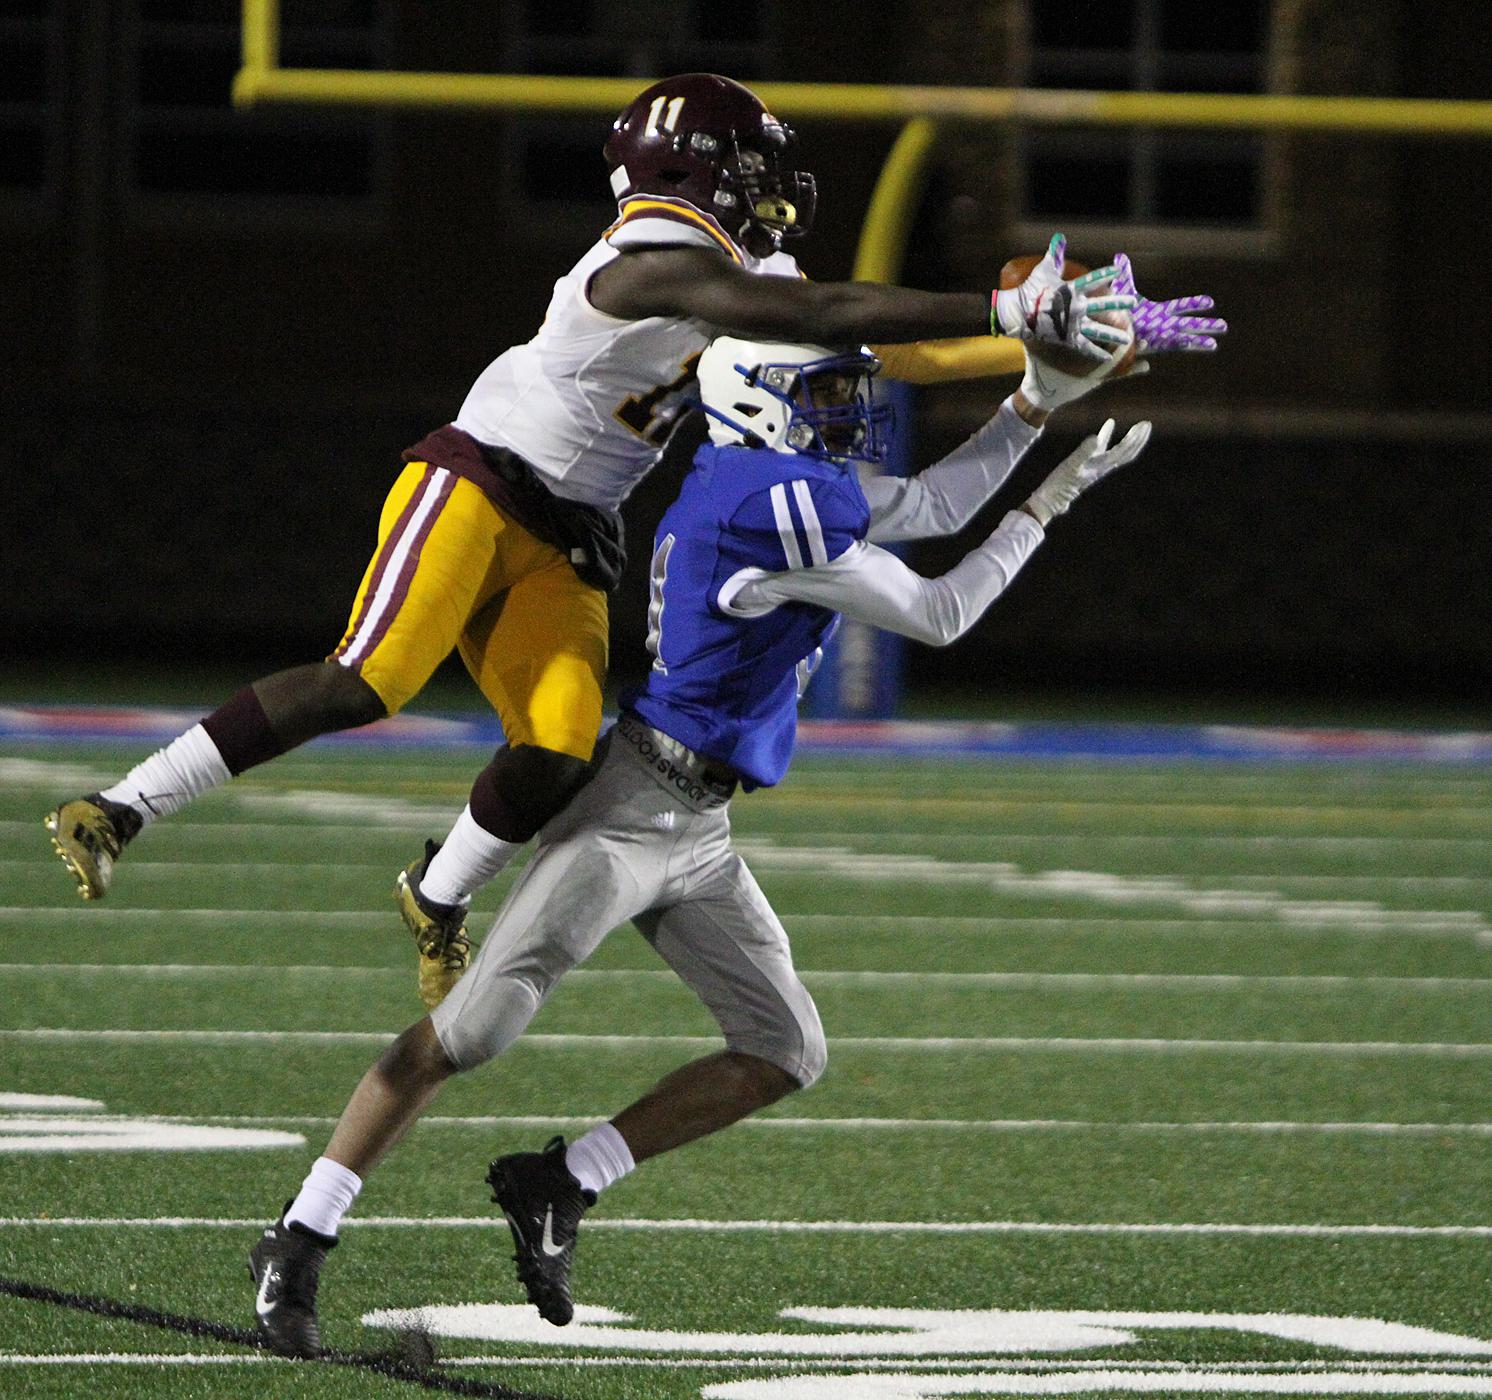 Spring Lake Park defensive back Tossy Johnson-Kelly and Irondale receiver CJ Ritchie fight for a ball in the flat during the fourth quarter. The pass fell incomplete. Photo by Drew Herron, SportsEngine